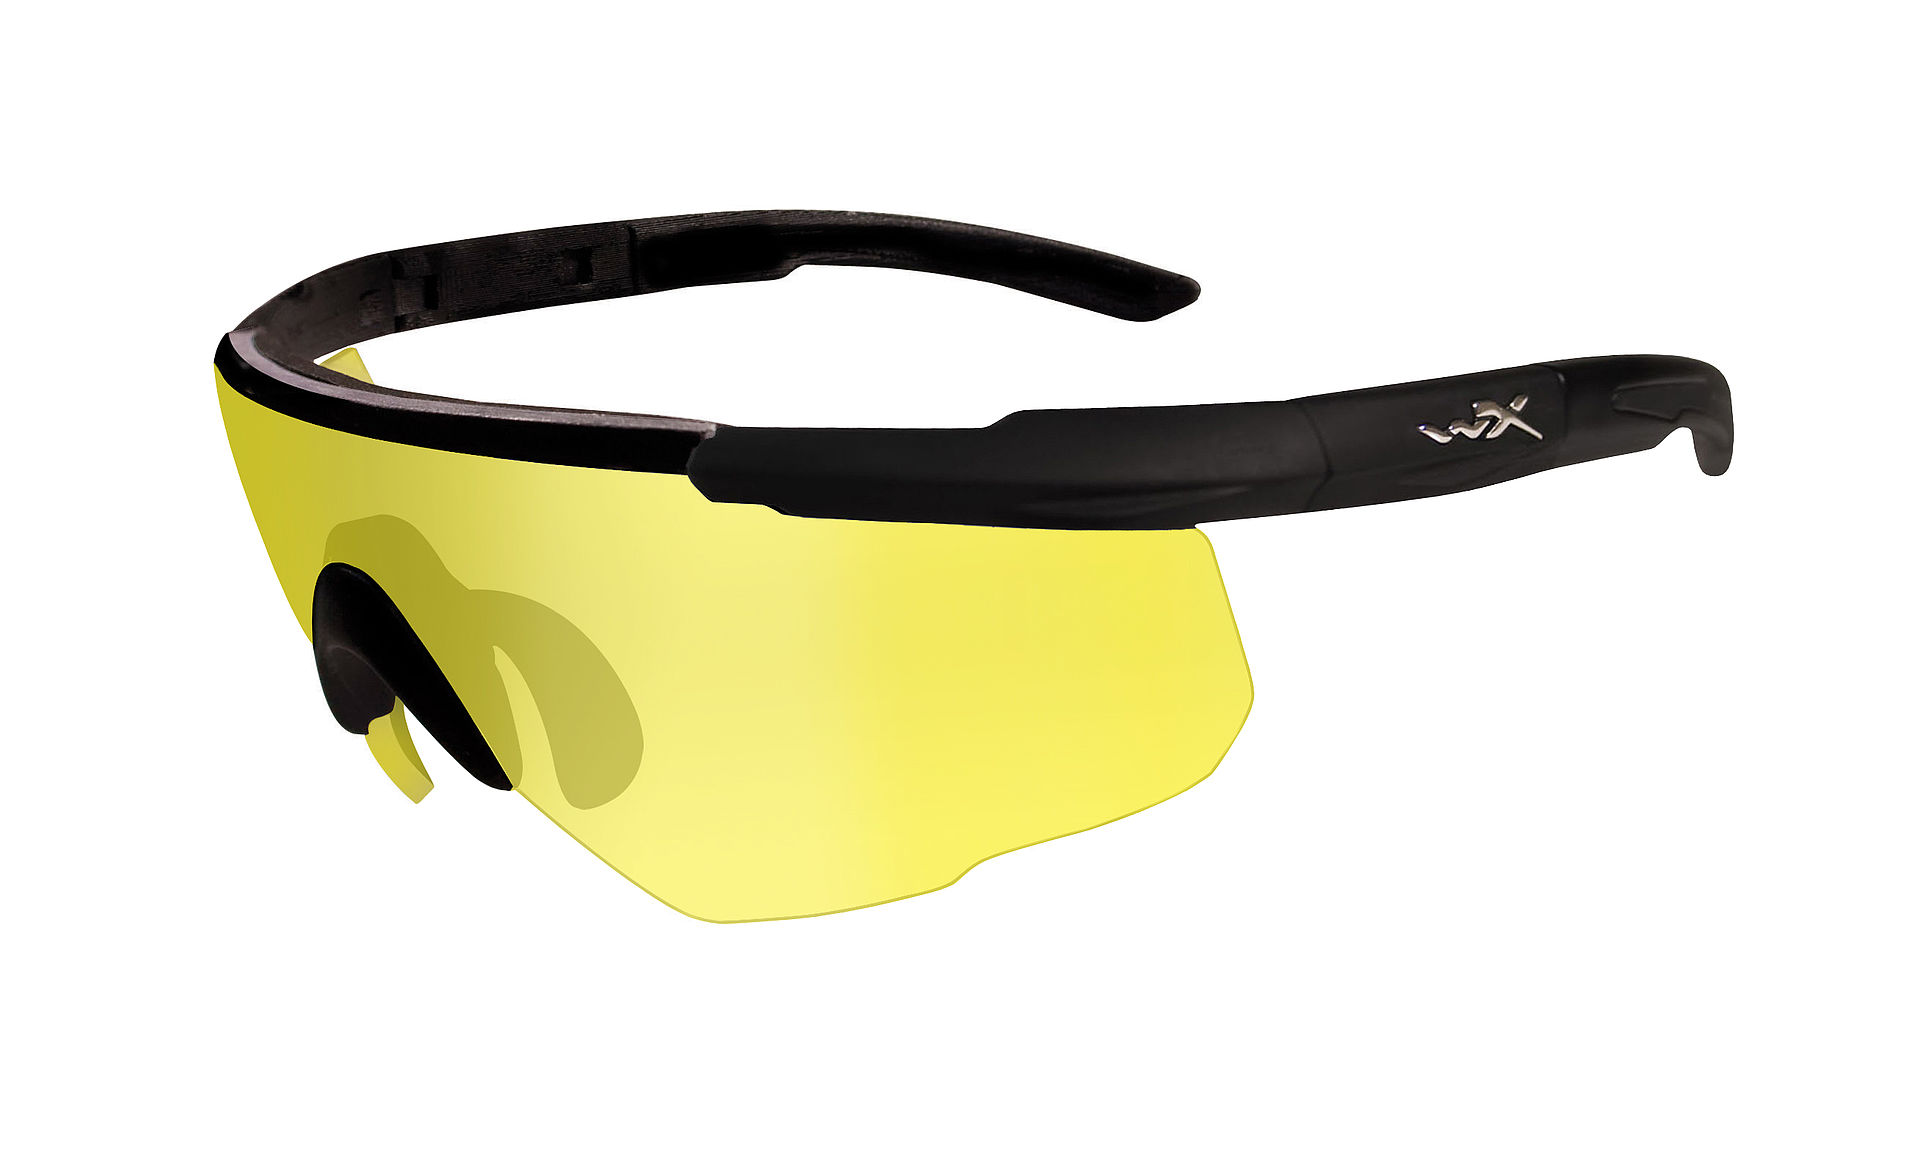 b380370c35 ... WILEY X SABER ADVANCED Pale yellow lens Matte black frame 49 EUR